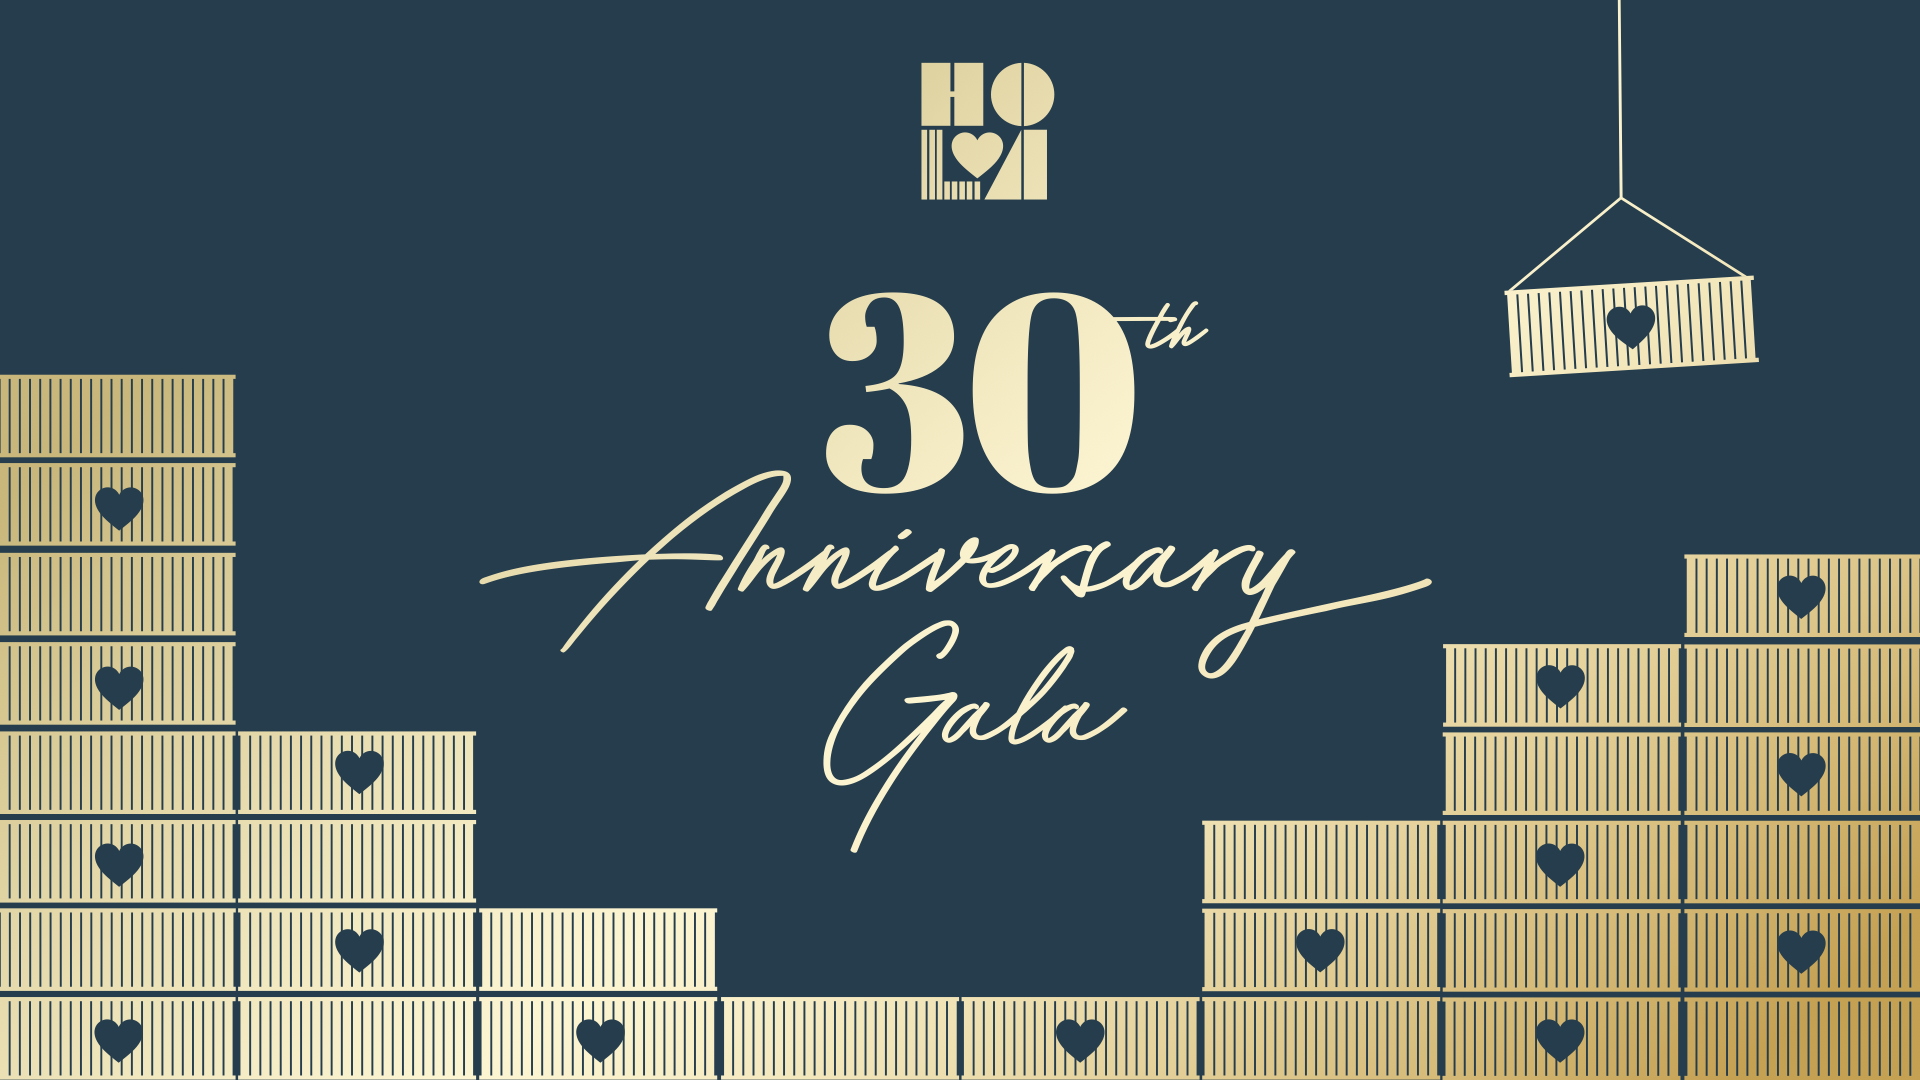 HOLA_18Gala_Invitation_r0_BannerImage.png